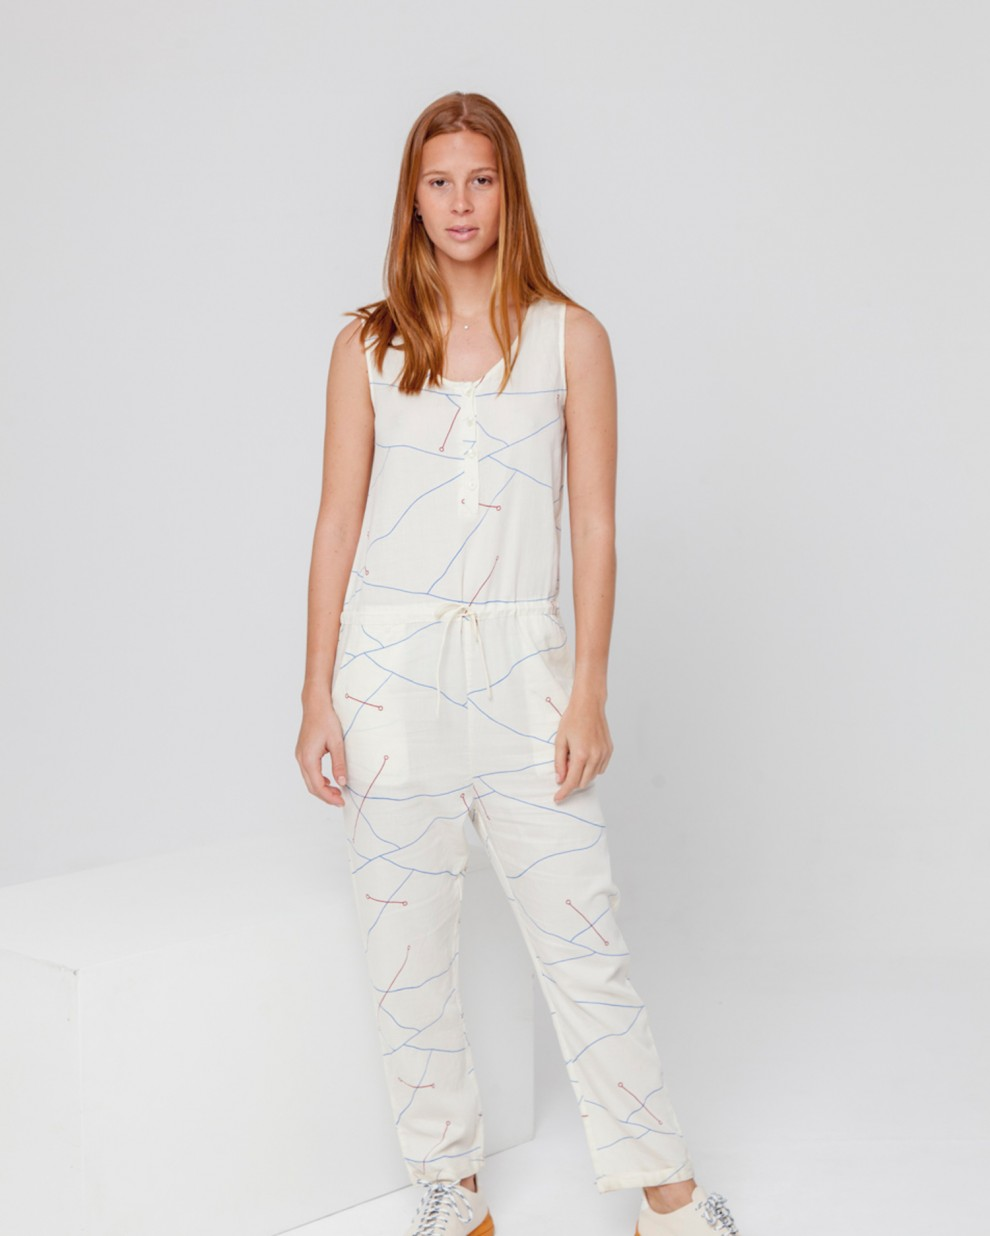 Abstract Lines Jumsuit